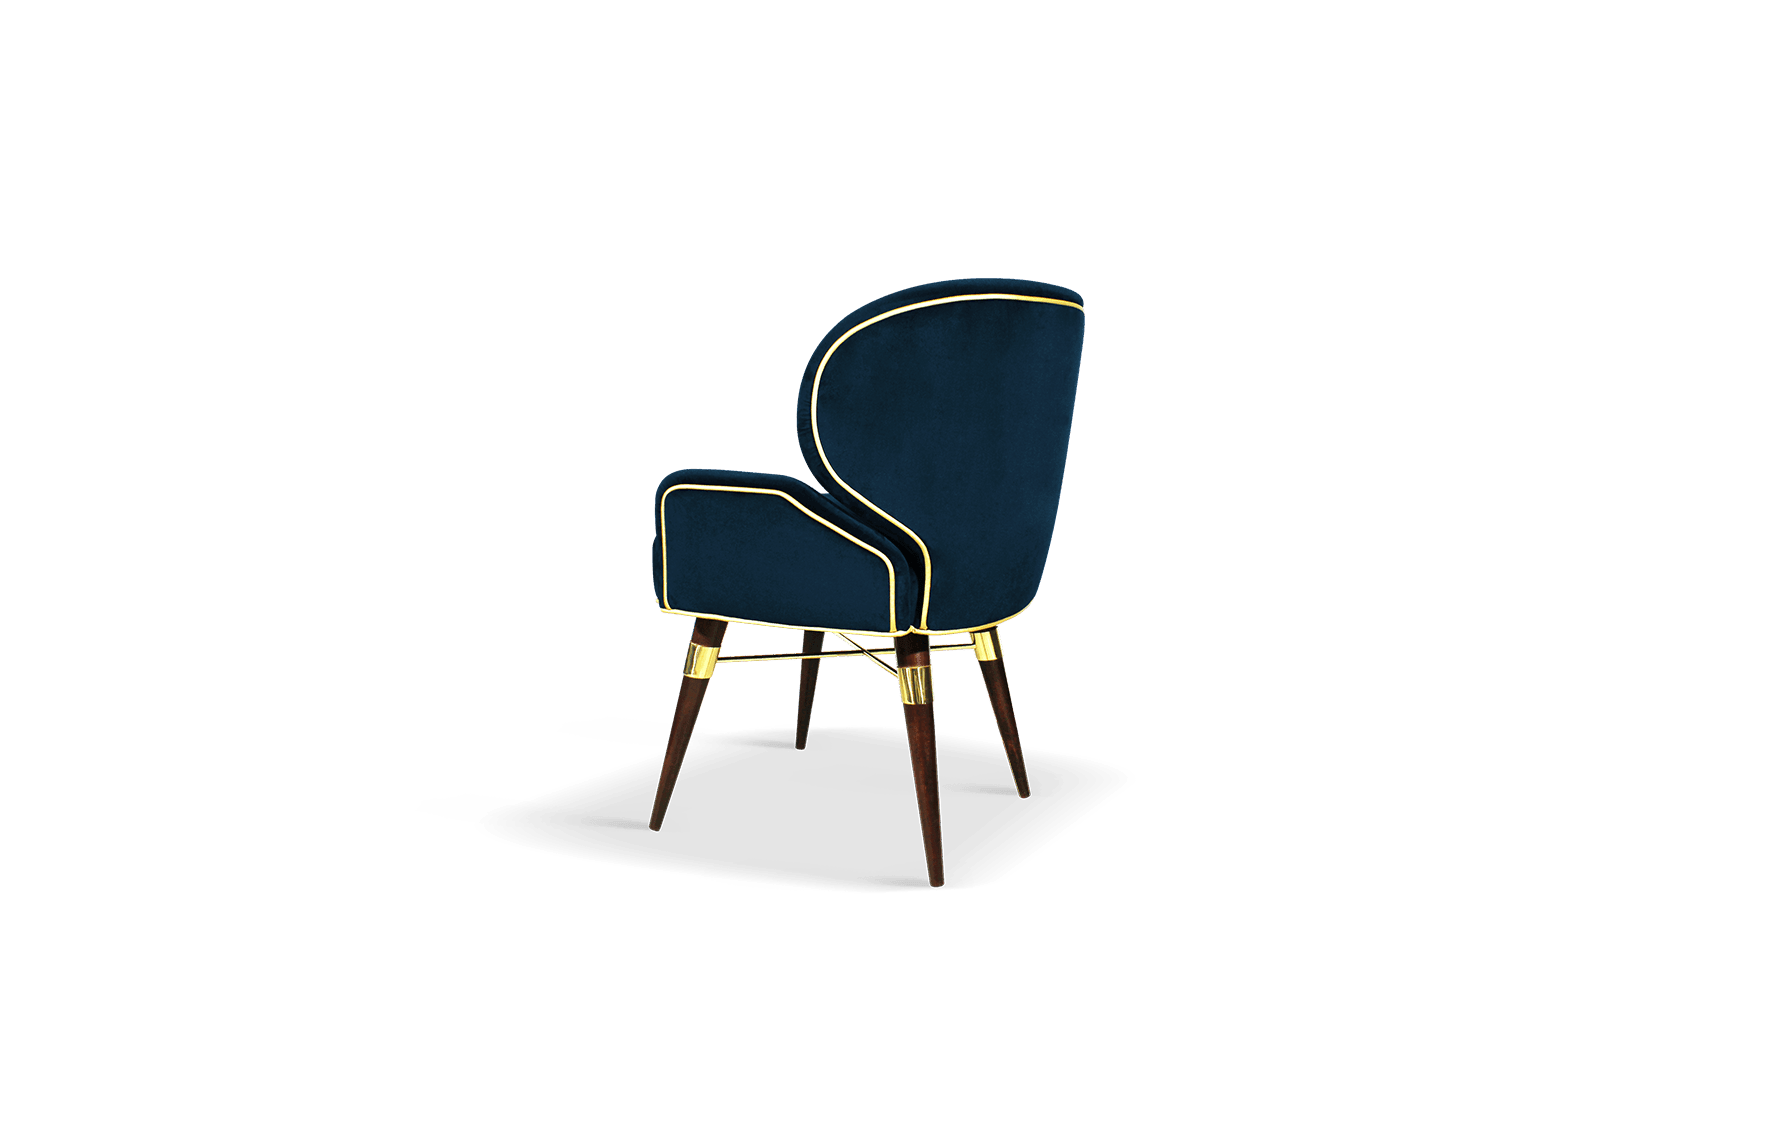 Louis ILouis I Mid-Century Dining Chair in blue velvet with gold piping